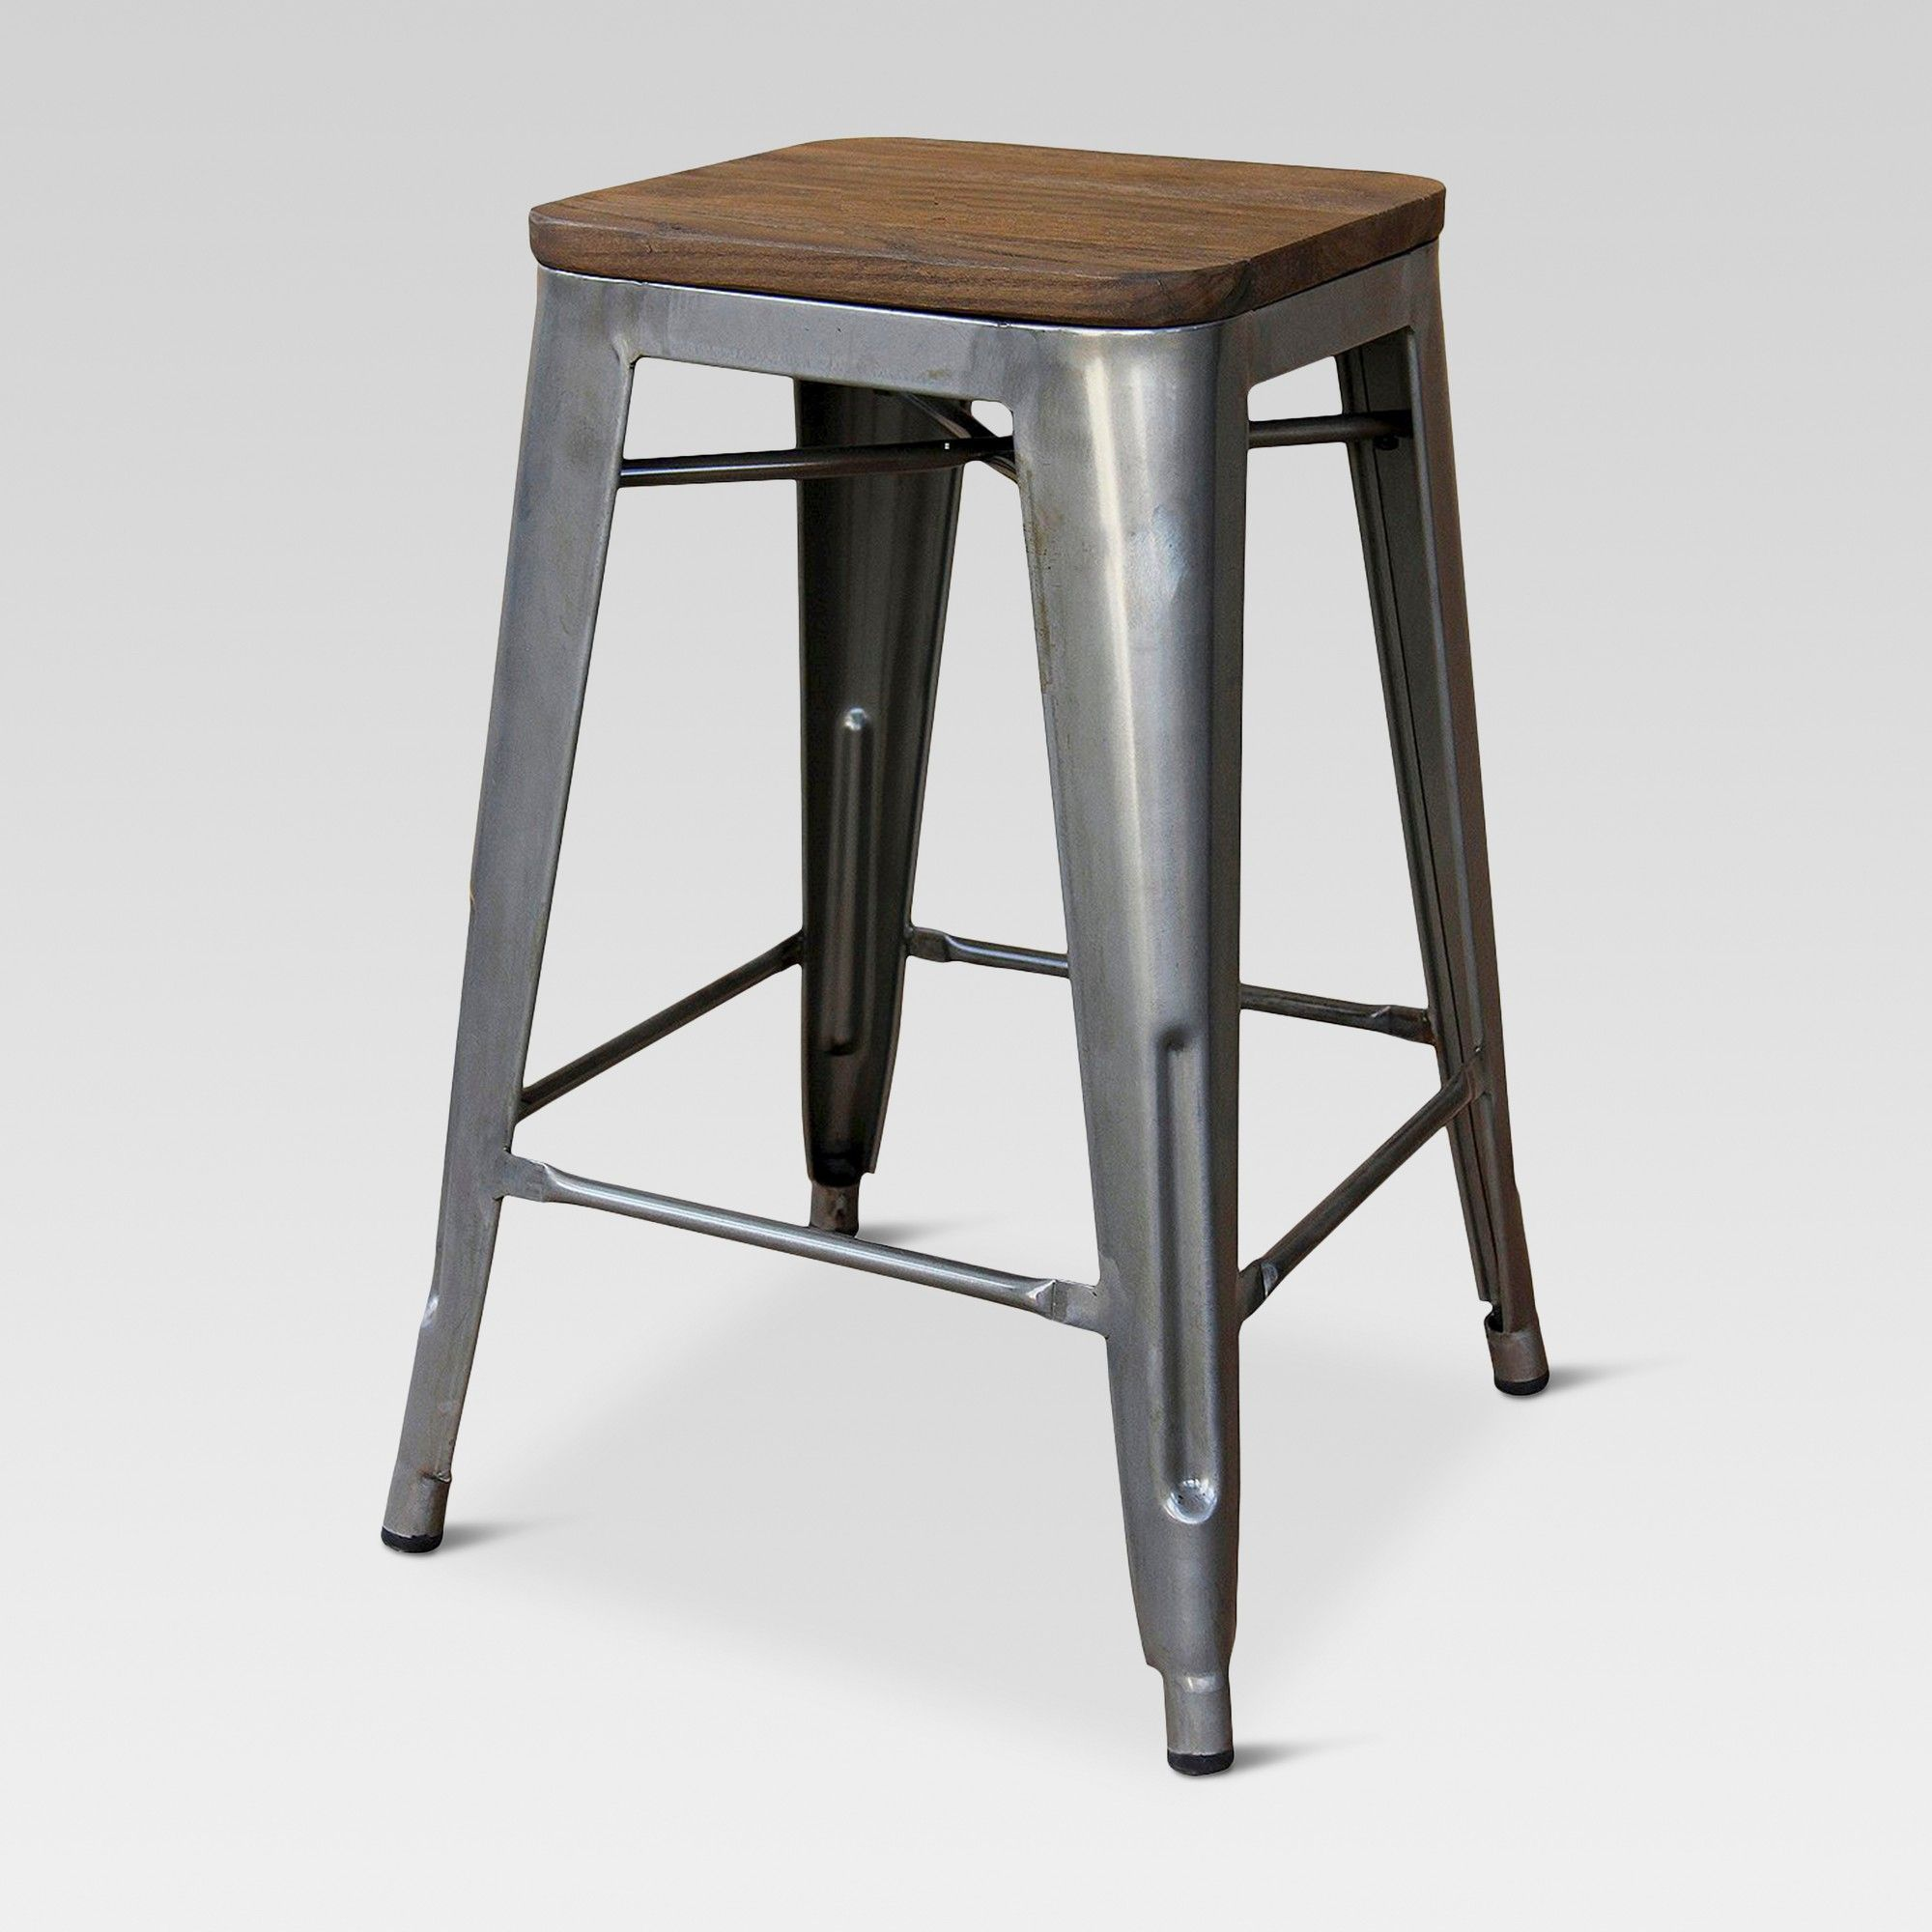 24 Hampden Industrial Wood Top Counter Stool Threshold 24 Counter Stools Counter Stools Stool